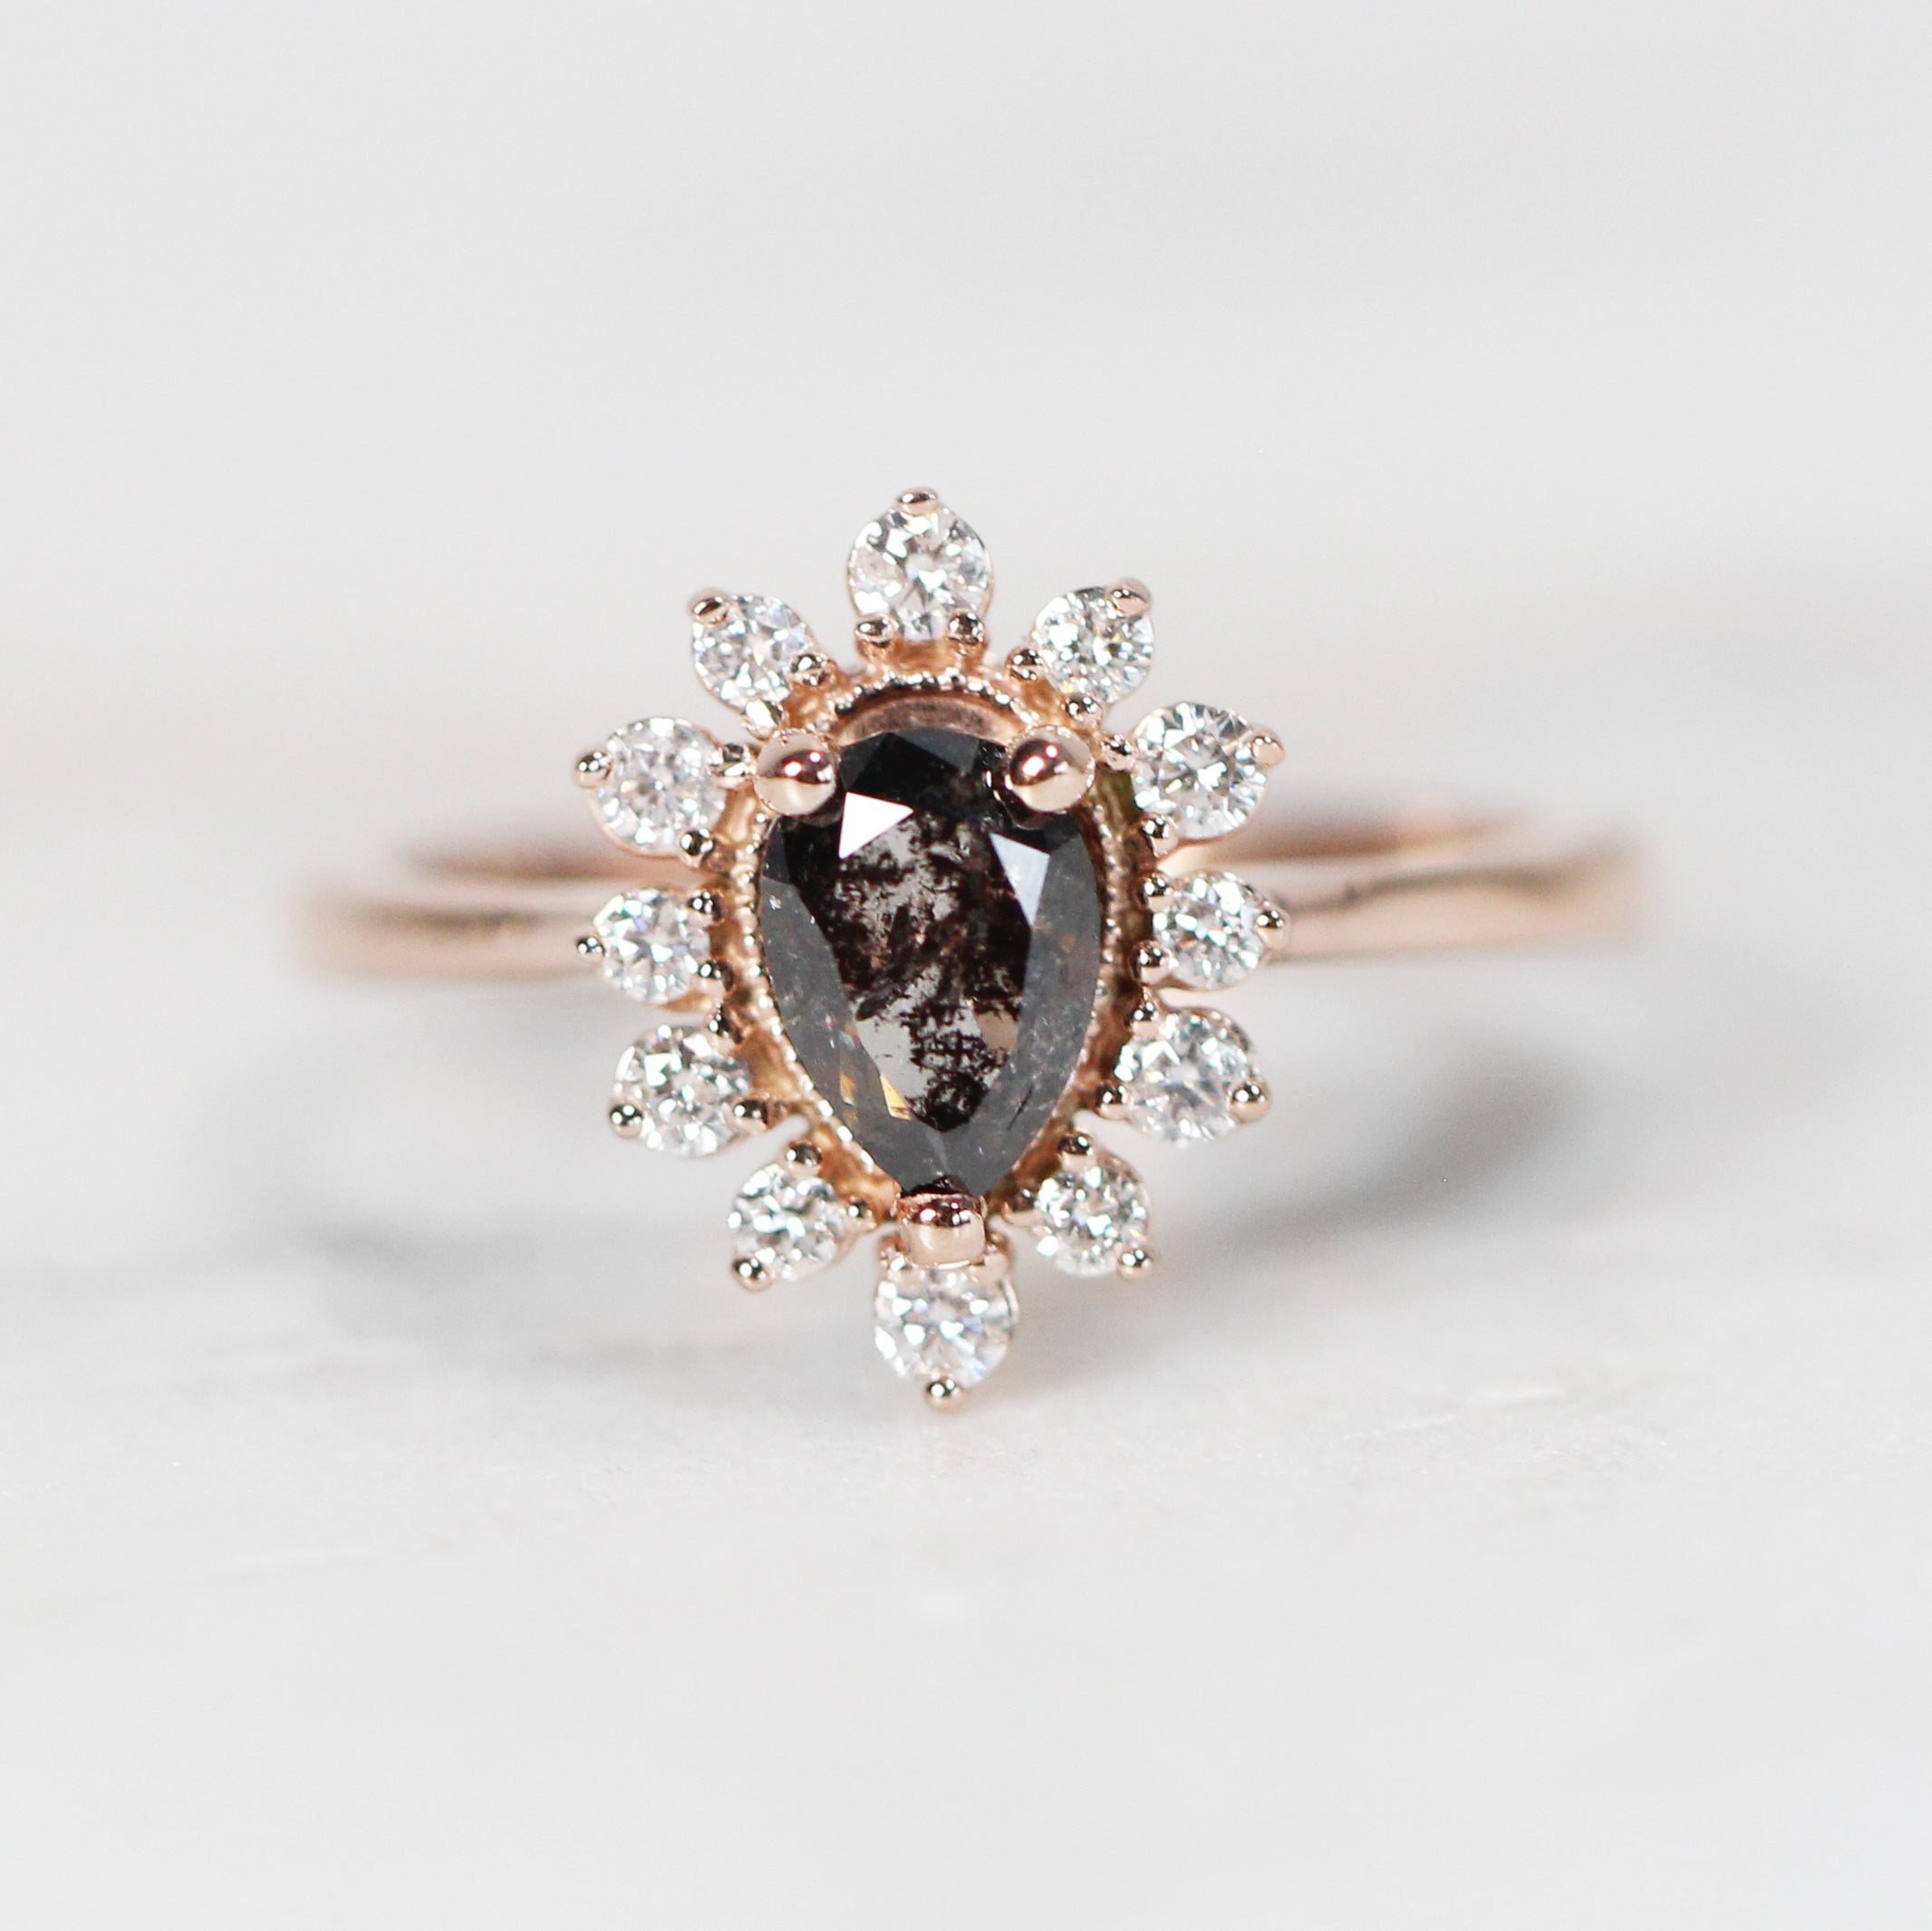 Lucy Ring with .93 Carat Pear Celestial Diamond in 10k Rose Gold - Celestial Diamonds ® by Midwinter Co.